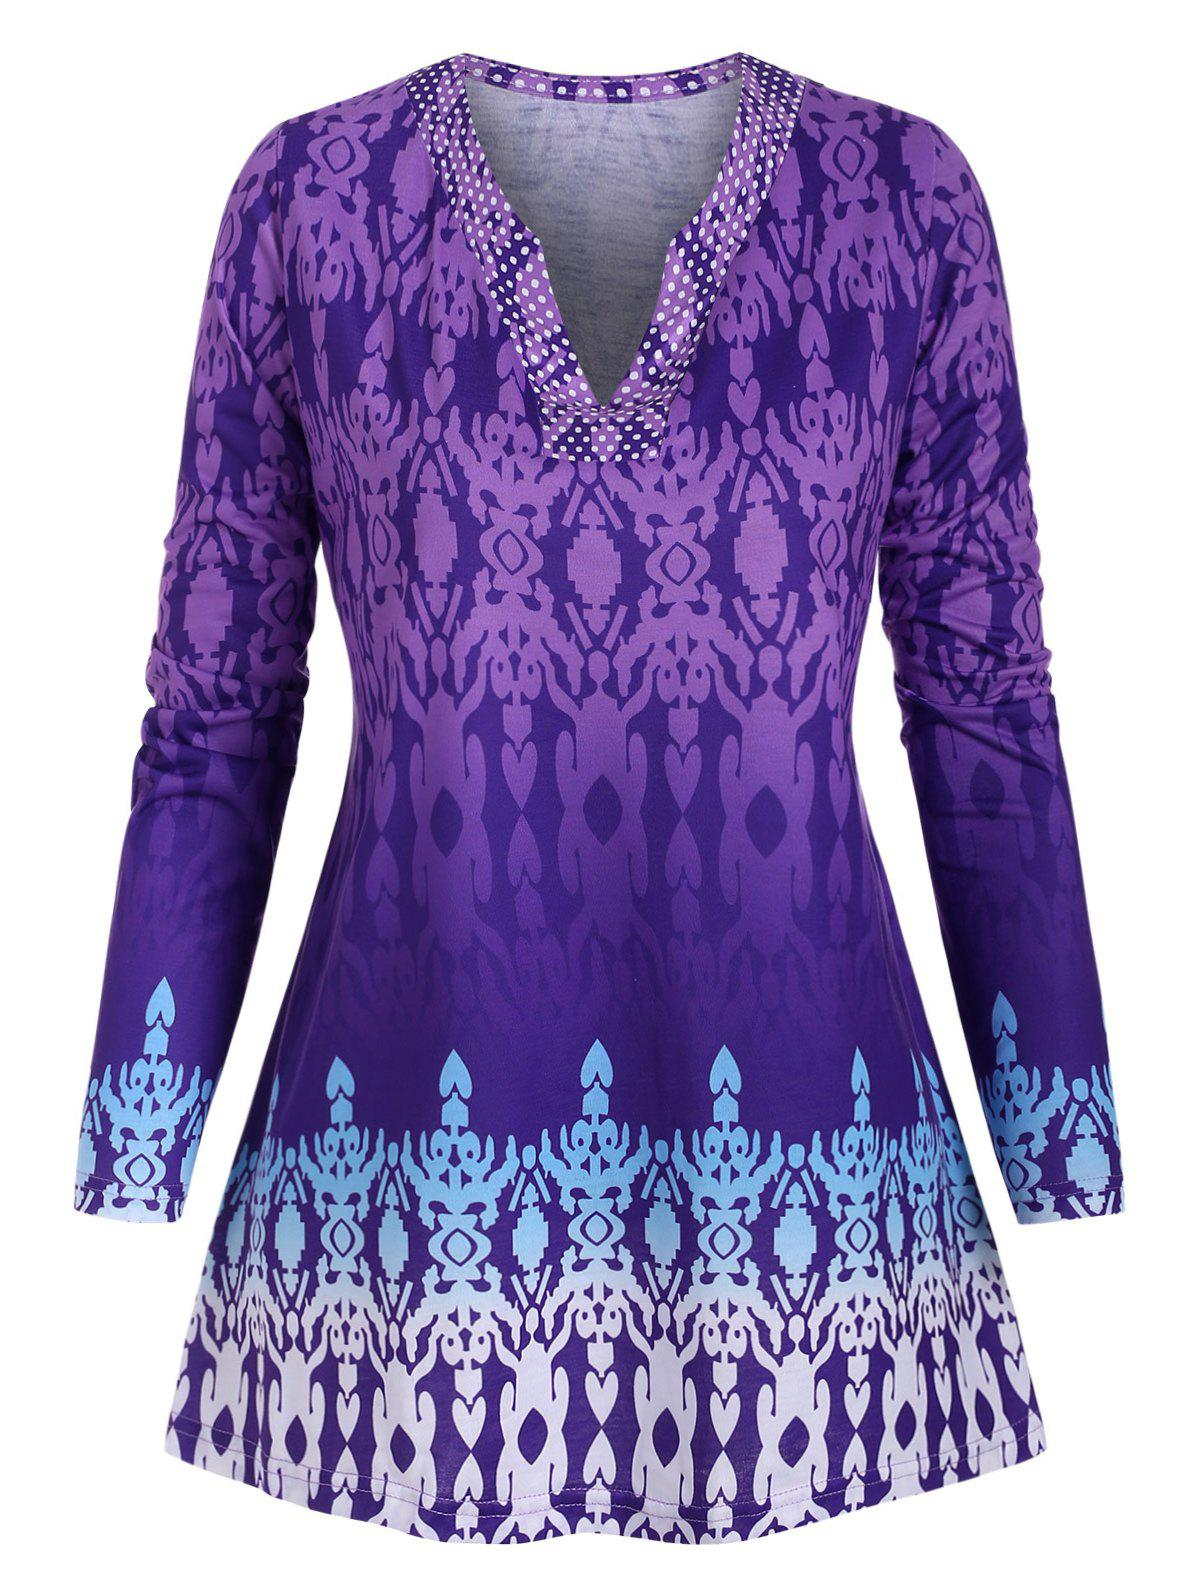 Plus Size Tribal Print T Shirt - PURPLE 5X